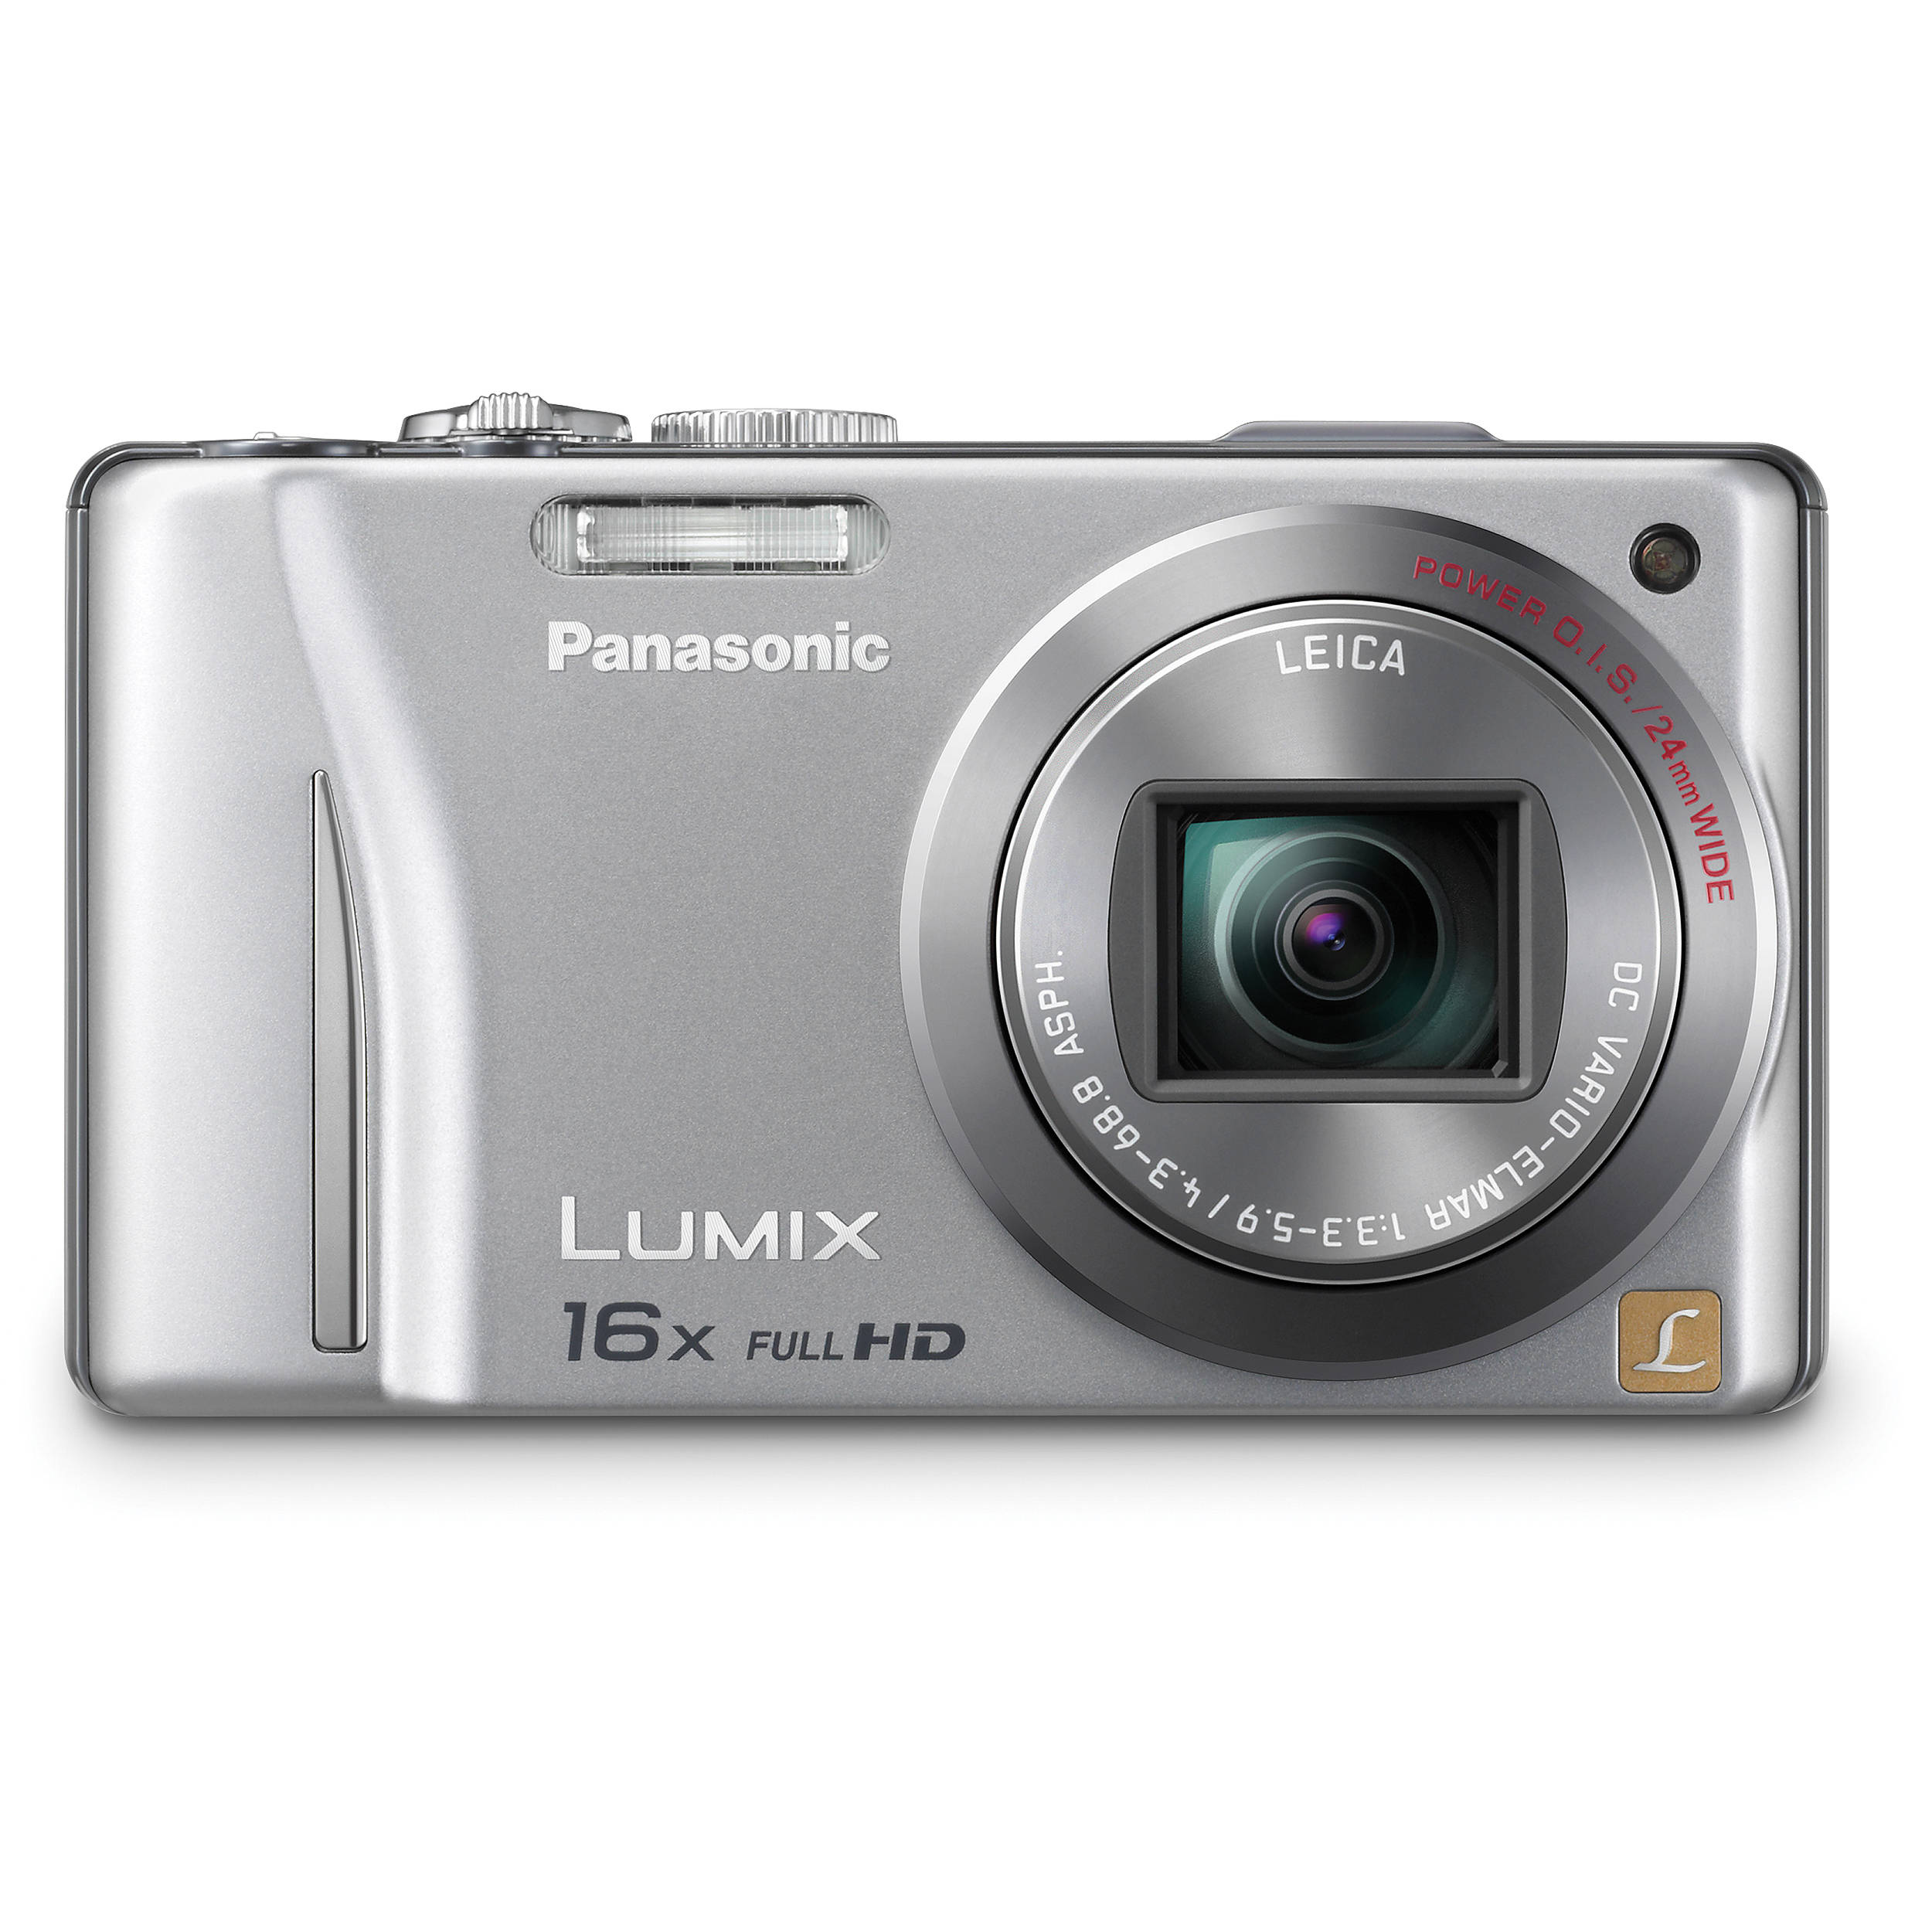 panasonic lumix dmc zs10 digital camera silver dmc zs10s b h rh bhphotovideo com panasonic lumix dmc-zs10 instruction manual panasonic lumix dmc-zs10 manual pdf